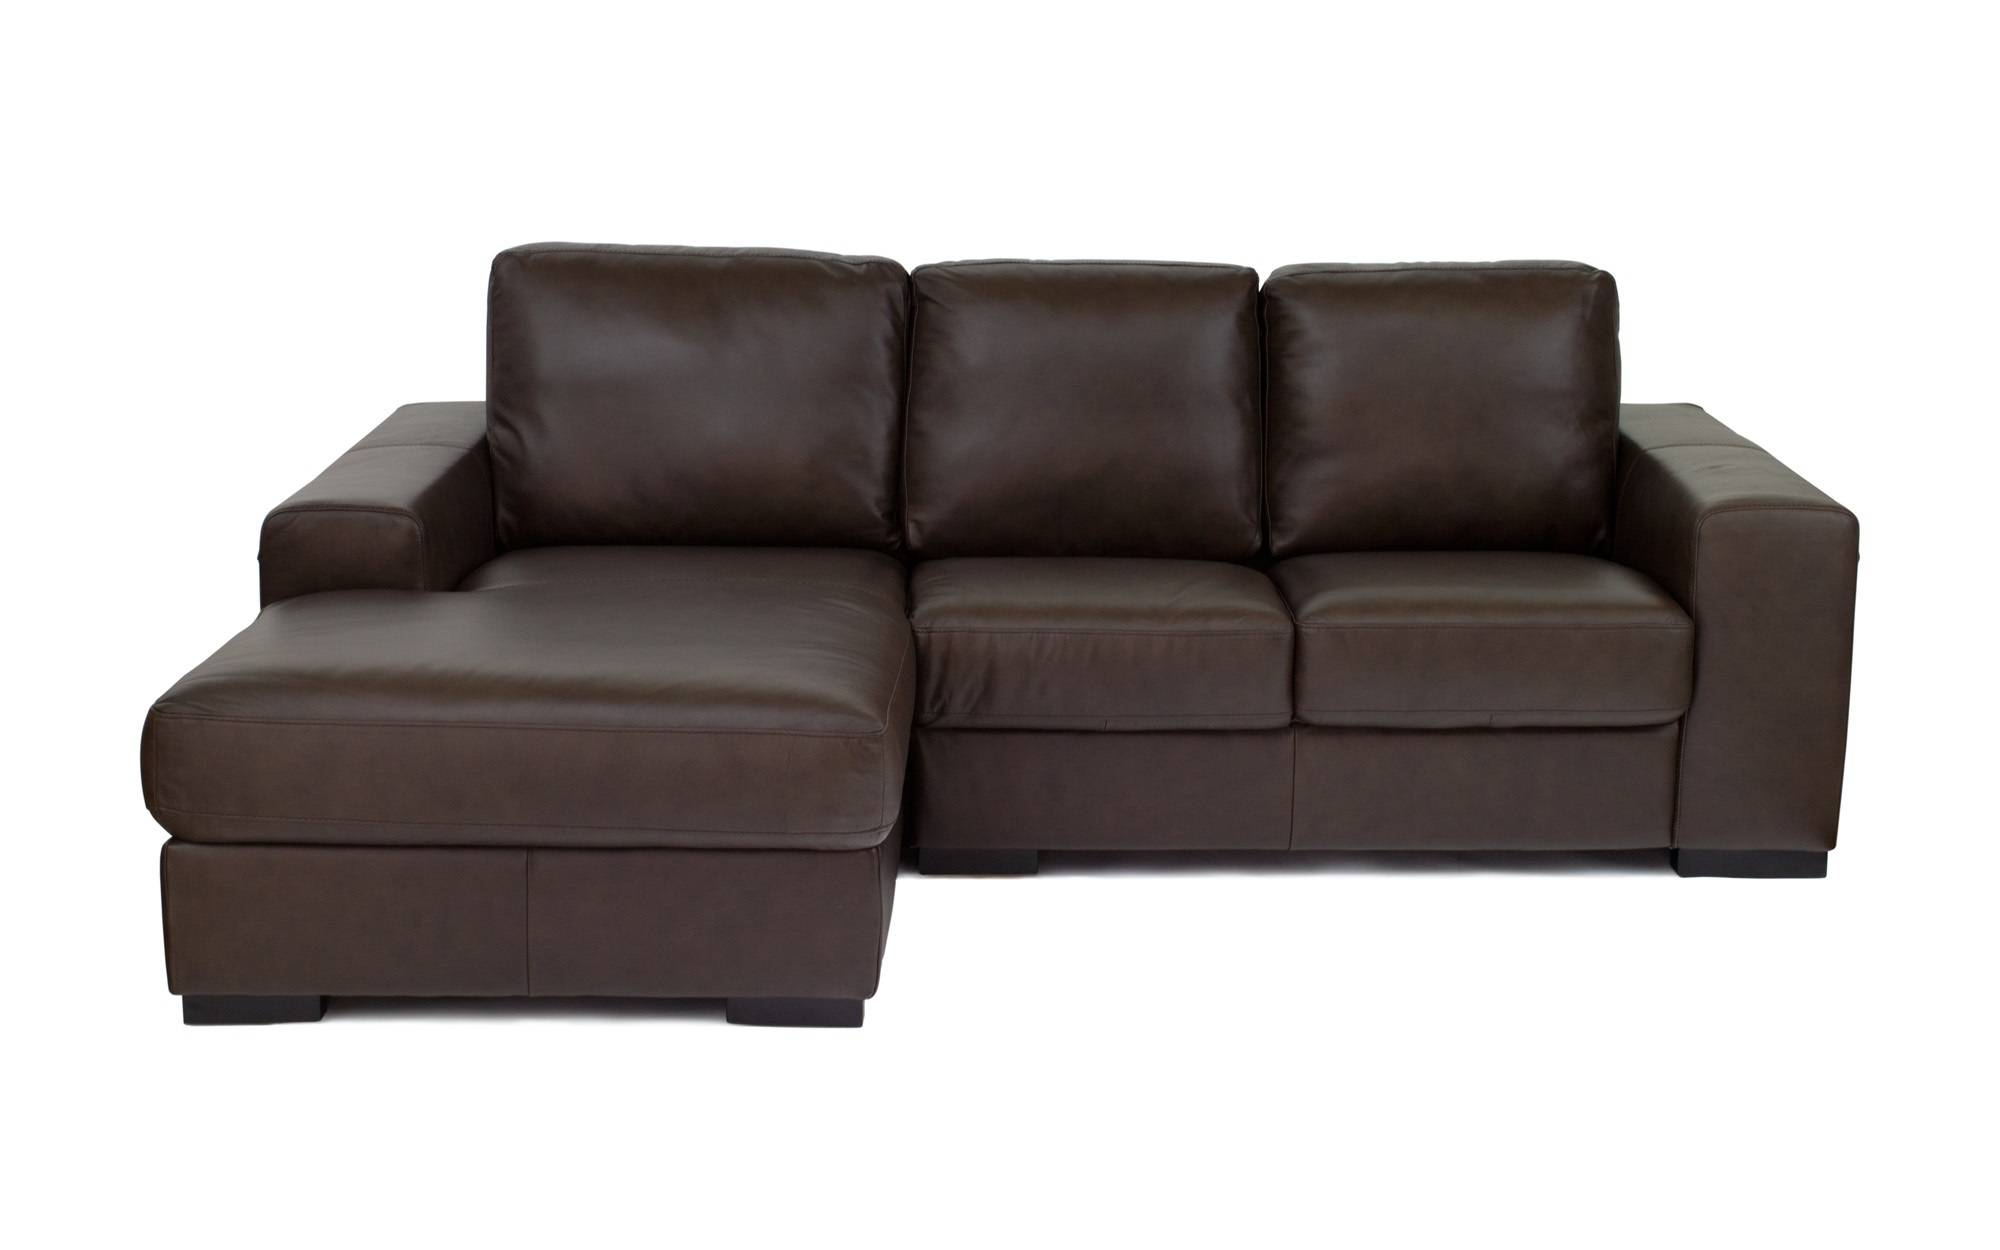 Leather Corner Sofas And Home Leather Reclining Sofas Houston within Leather Corner Sofas (Image 18 of 30)